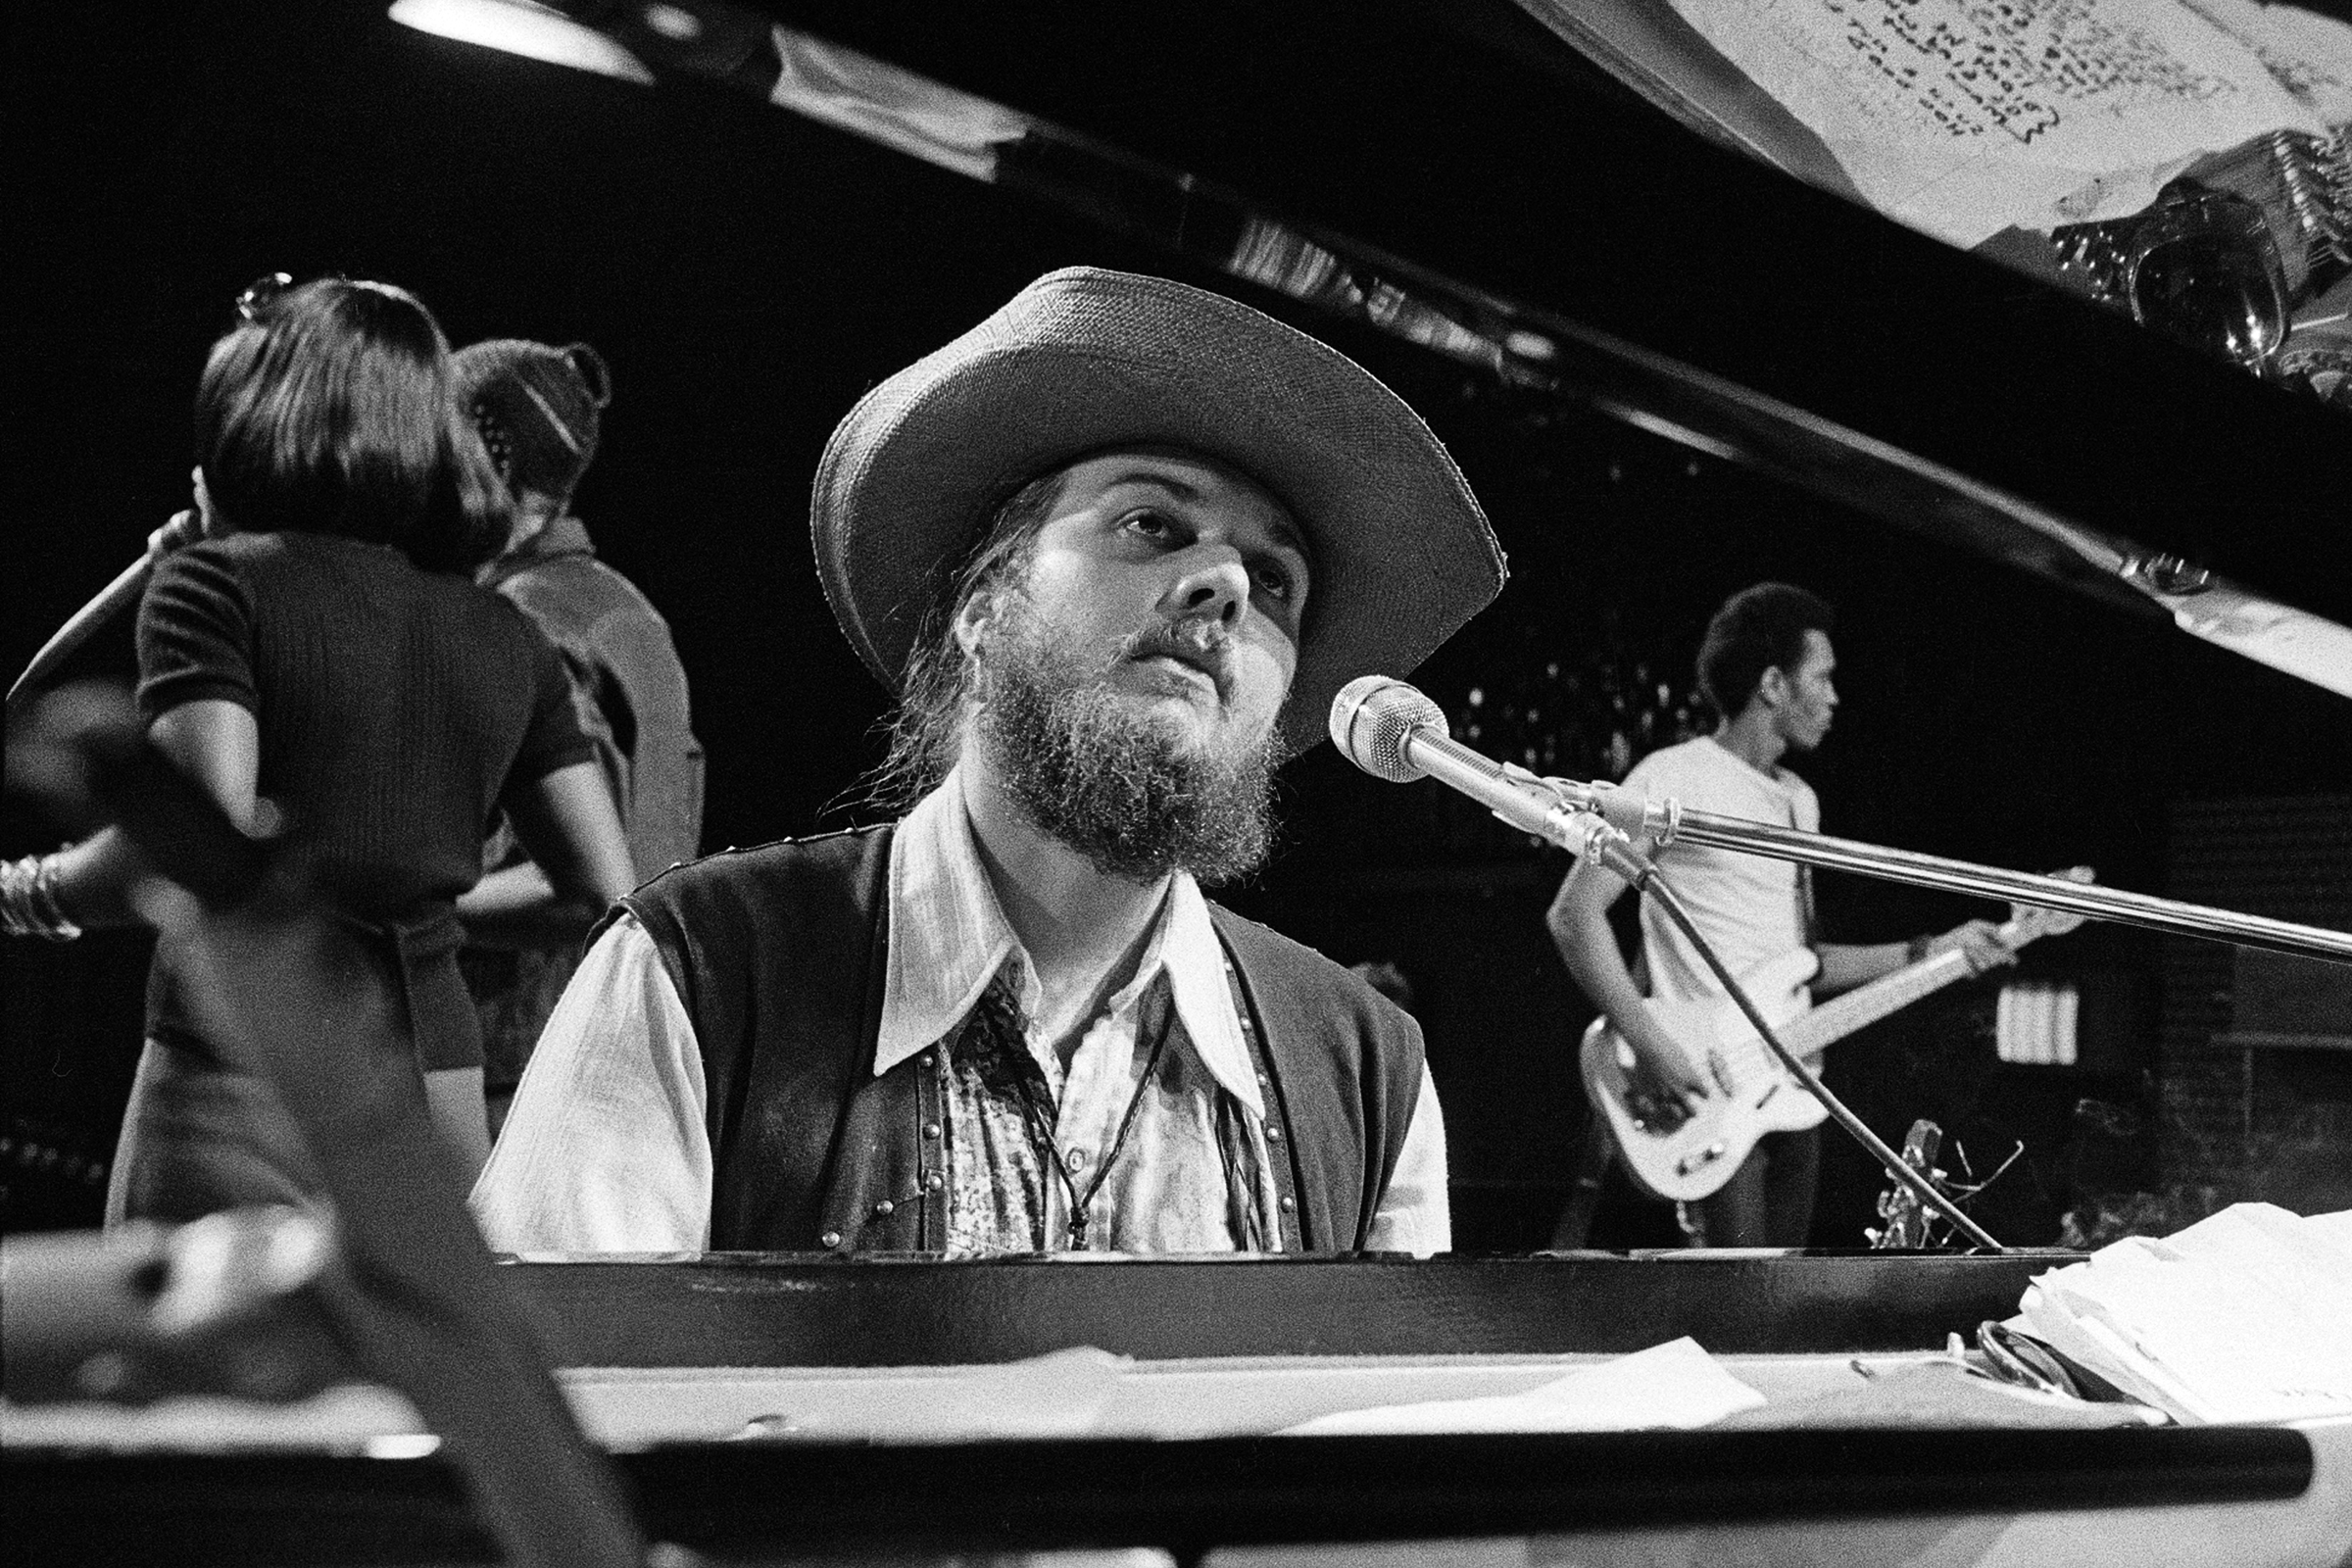 American singer-songwriter, pianist and guitarist, Dr. John performing at the Montreux Jazz Festival in Montreux, Switzerland, 1st July 1973. (Photo by Michael Putland/Getty Images)